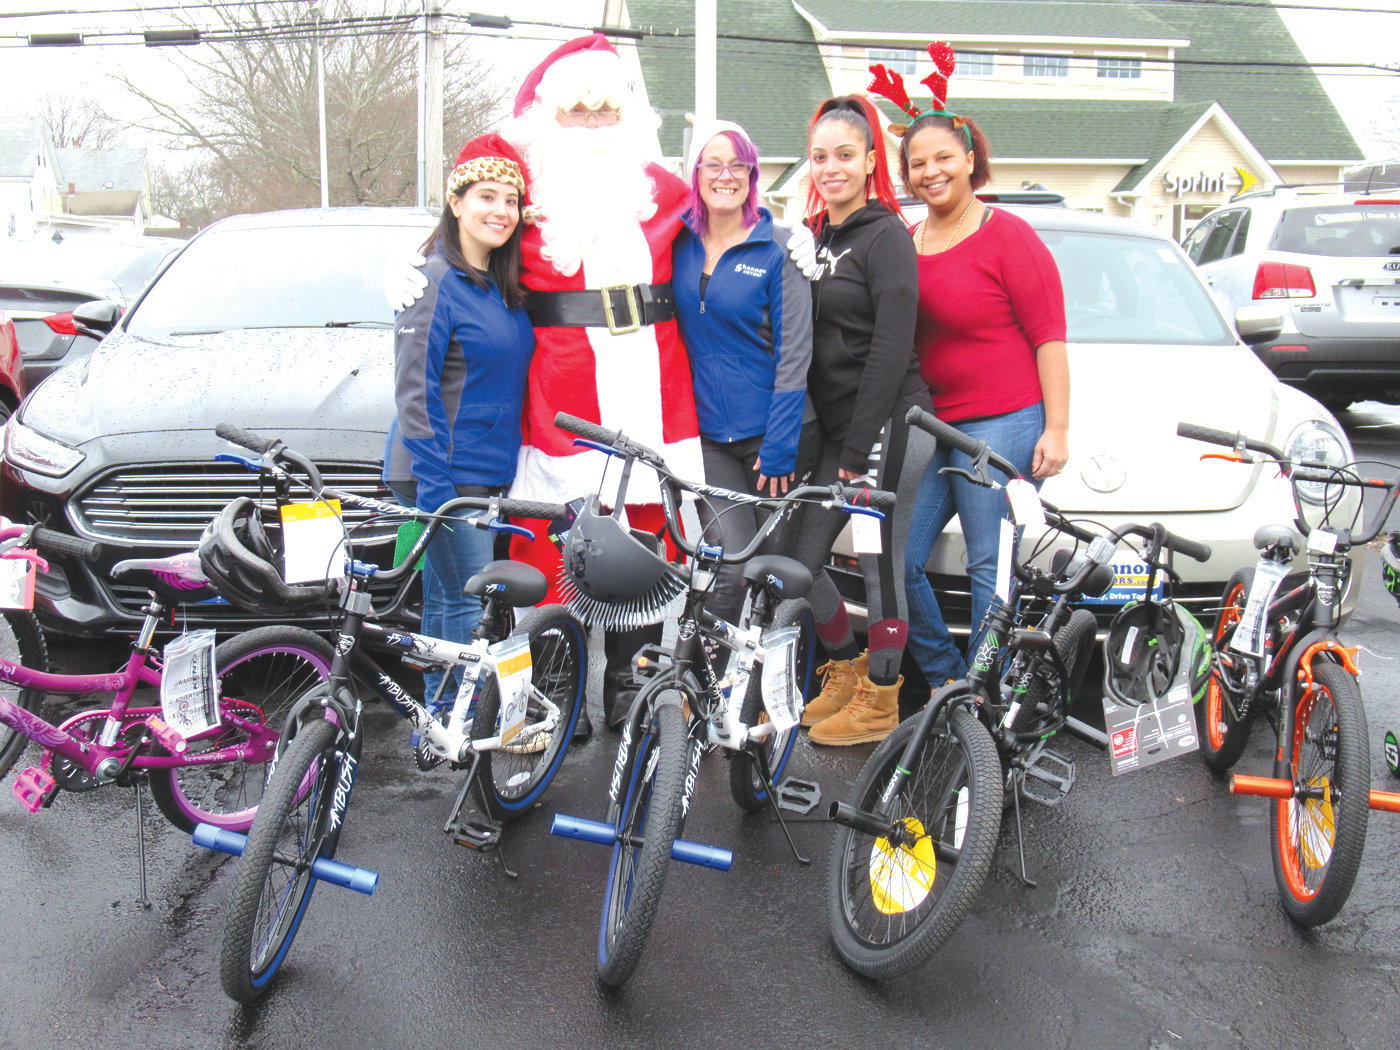 SANTA'S SUPER STAFF: Santa Claus made a special appearance for 25 children who won the used car company bike giveaway and is joined by helpers Anne Quinn, Dawn Lapan, Marenis Peralta and Williana Pimentel. (Photos by Pete Fontaine)